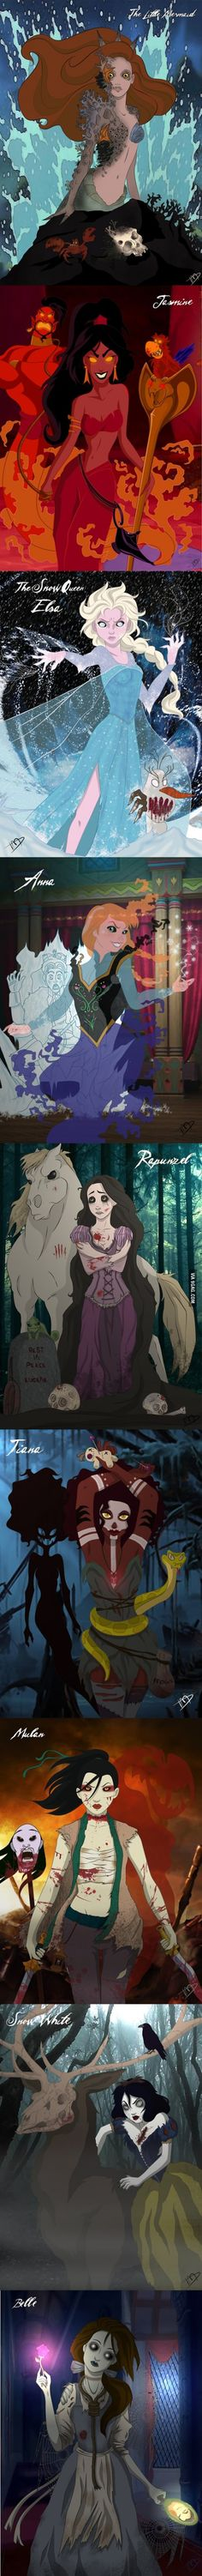 Disney Princesses become the villains